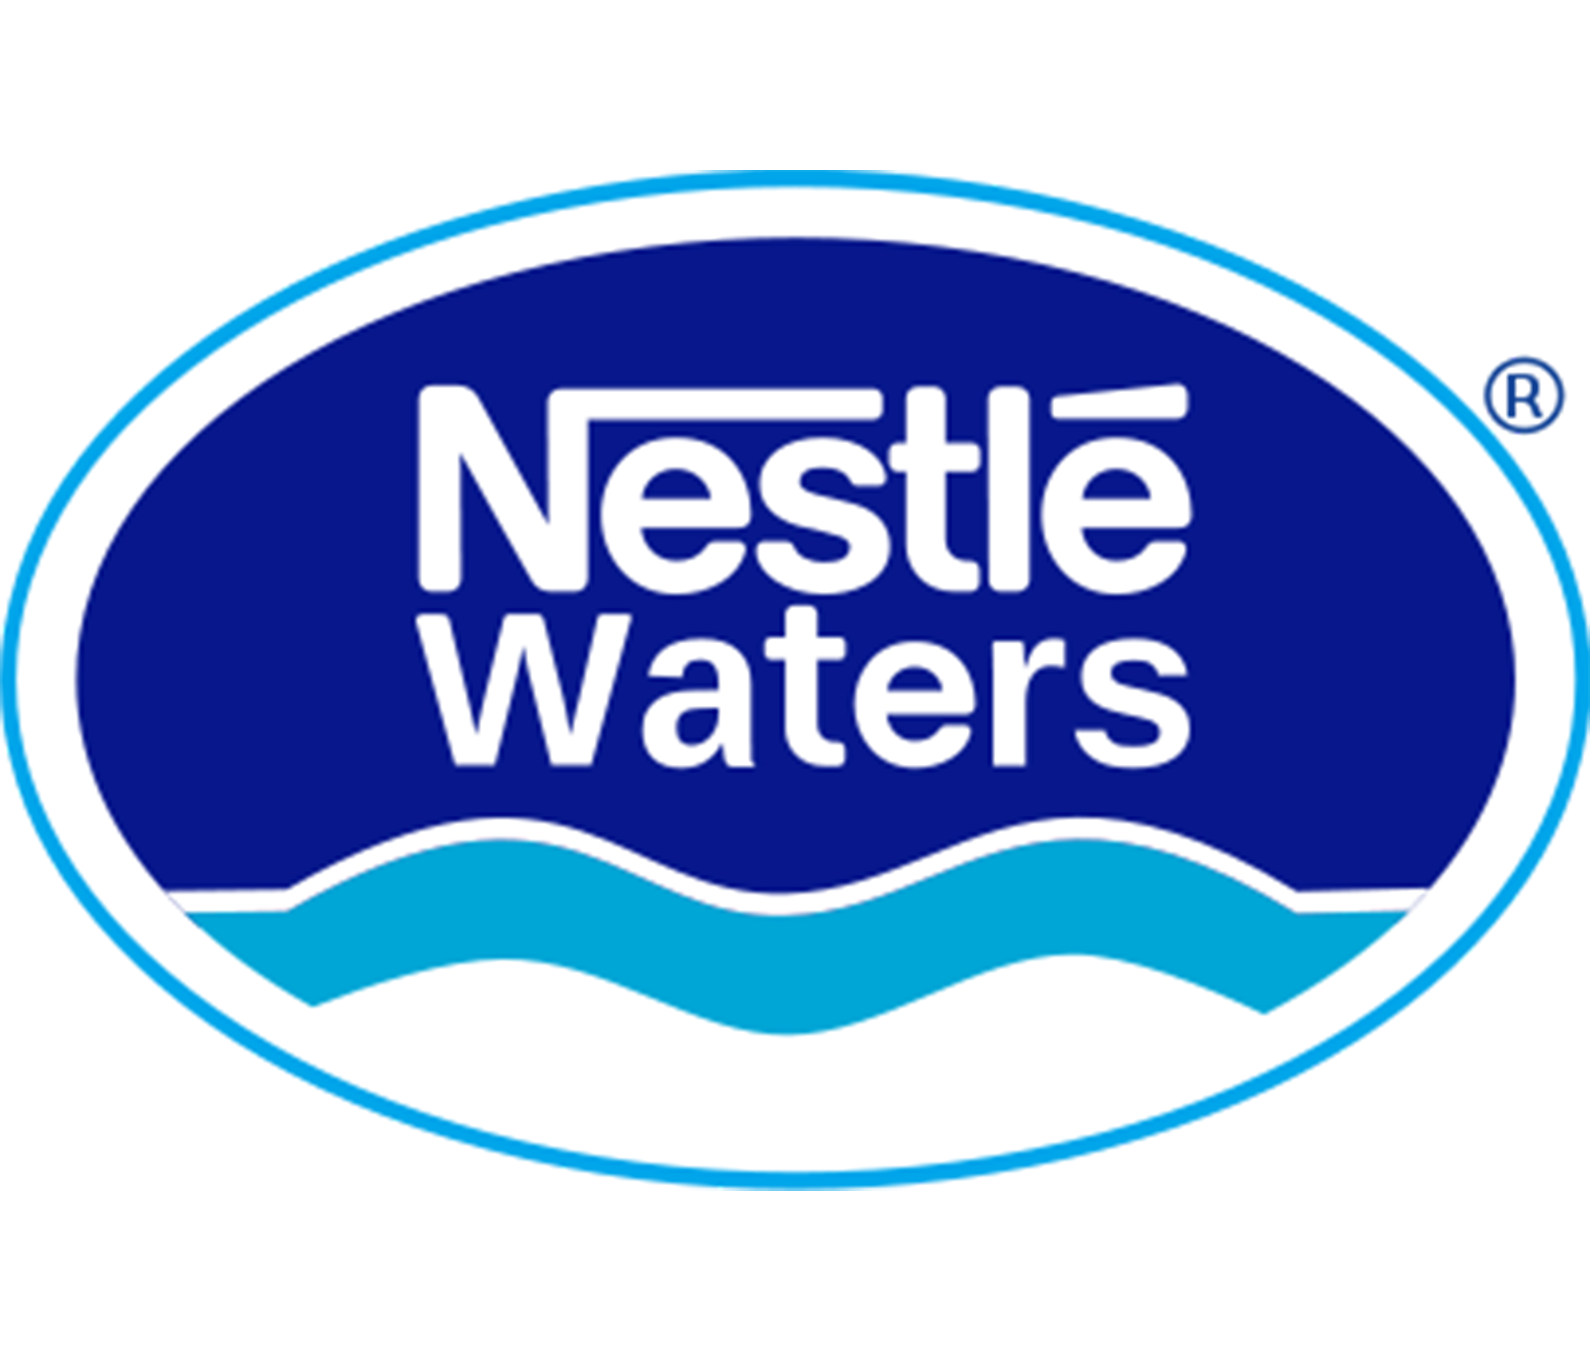 7NestleWaters